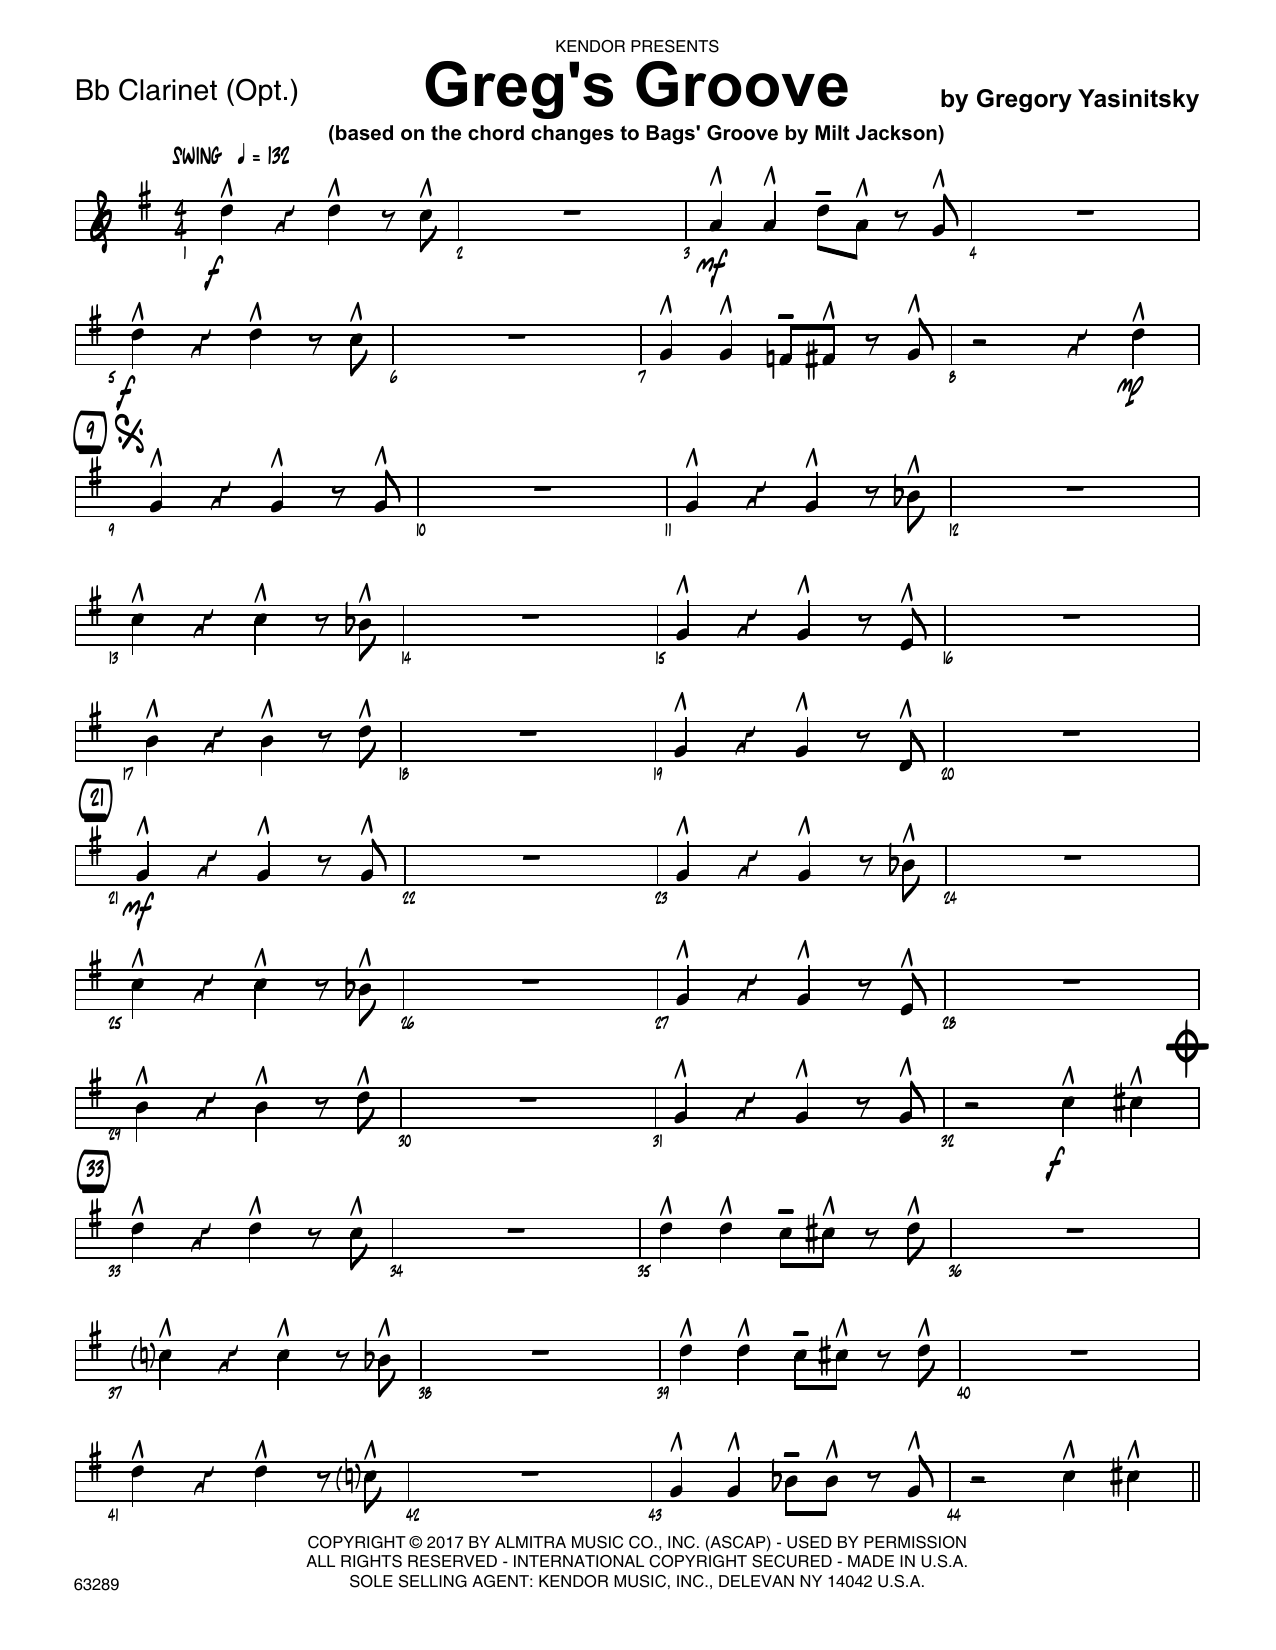 Greg's Groove - Bb Clarinet Sheet Music